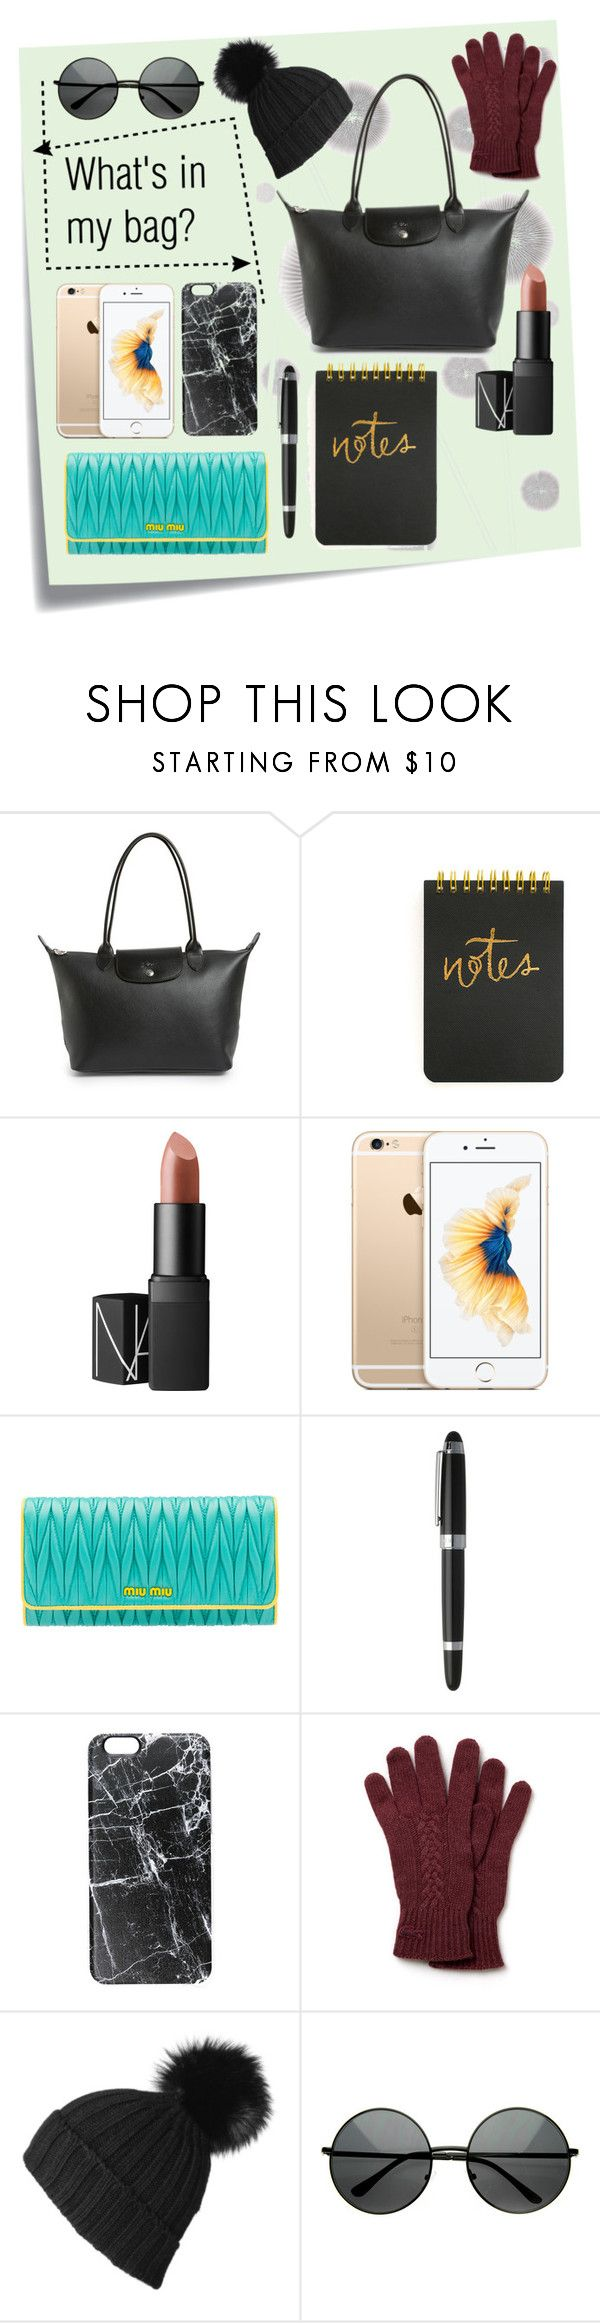 """""""What's in my bag? // TOTE //"""" by iinnkkrniawan ❤ liked on Polyvore featuring Post-It, Komar, Longchamp, NARS Cosmetics, Miu Miu, HUGO, Casetify, Lacoste, women's clothing and women's fashion"""